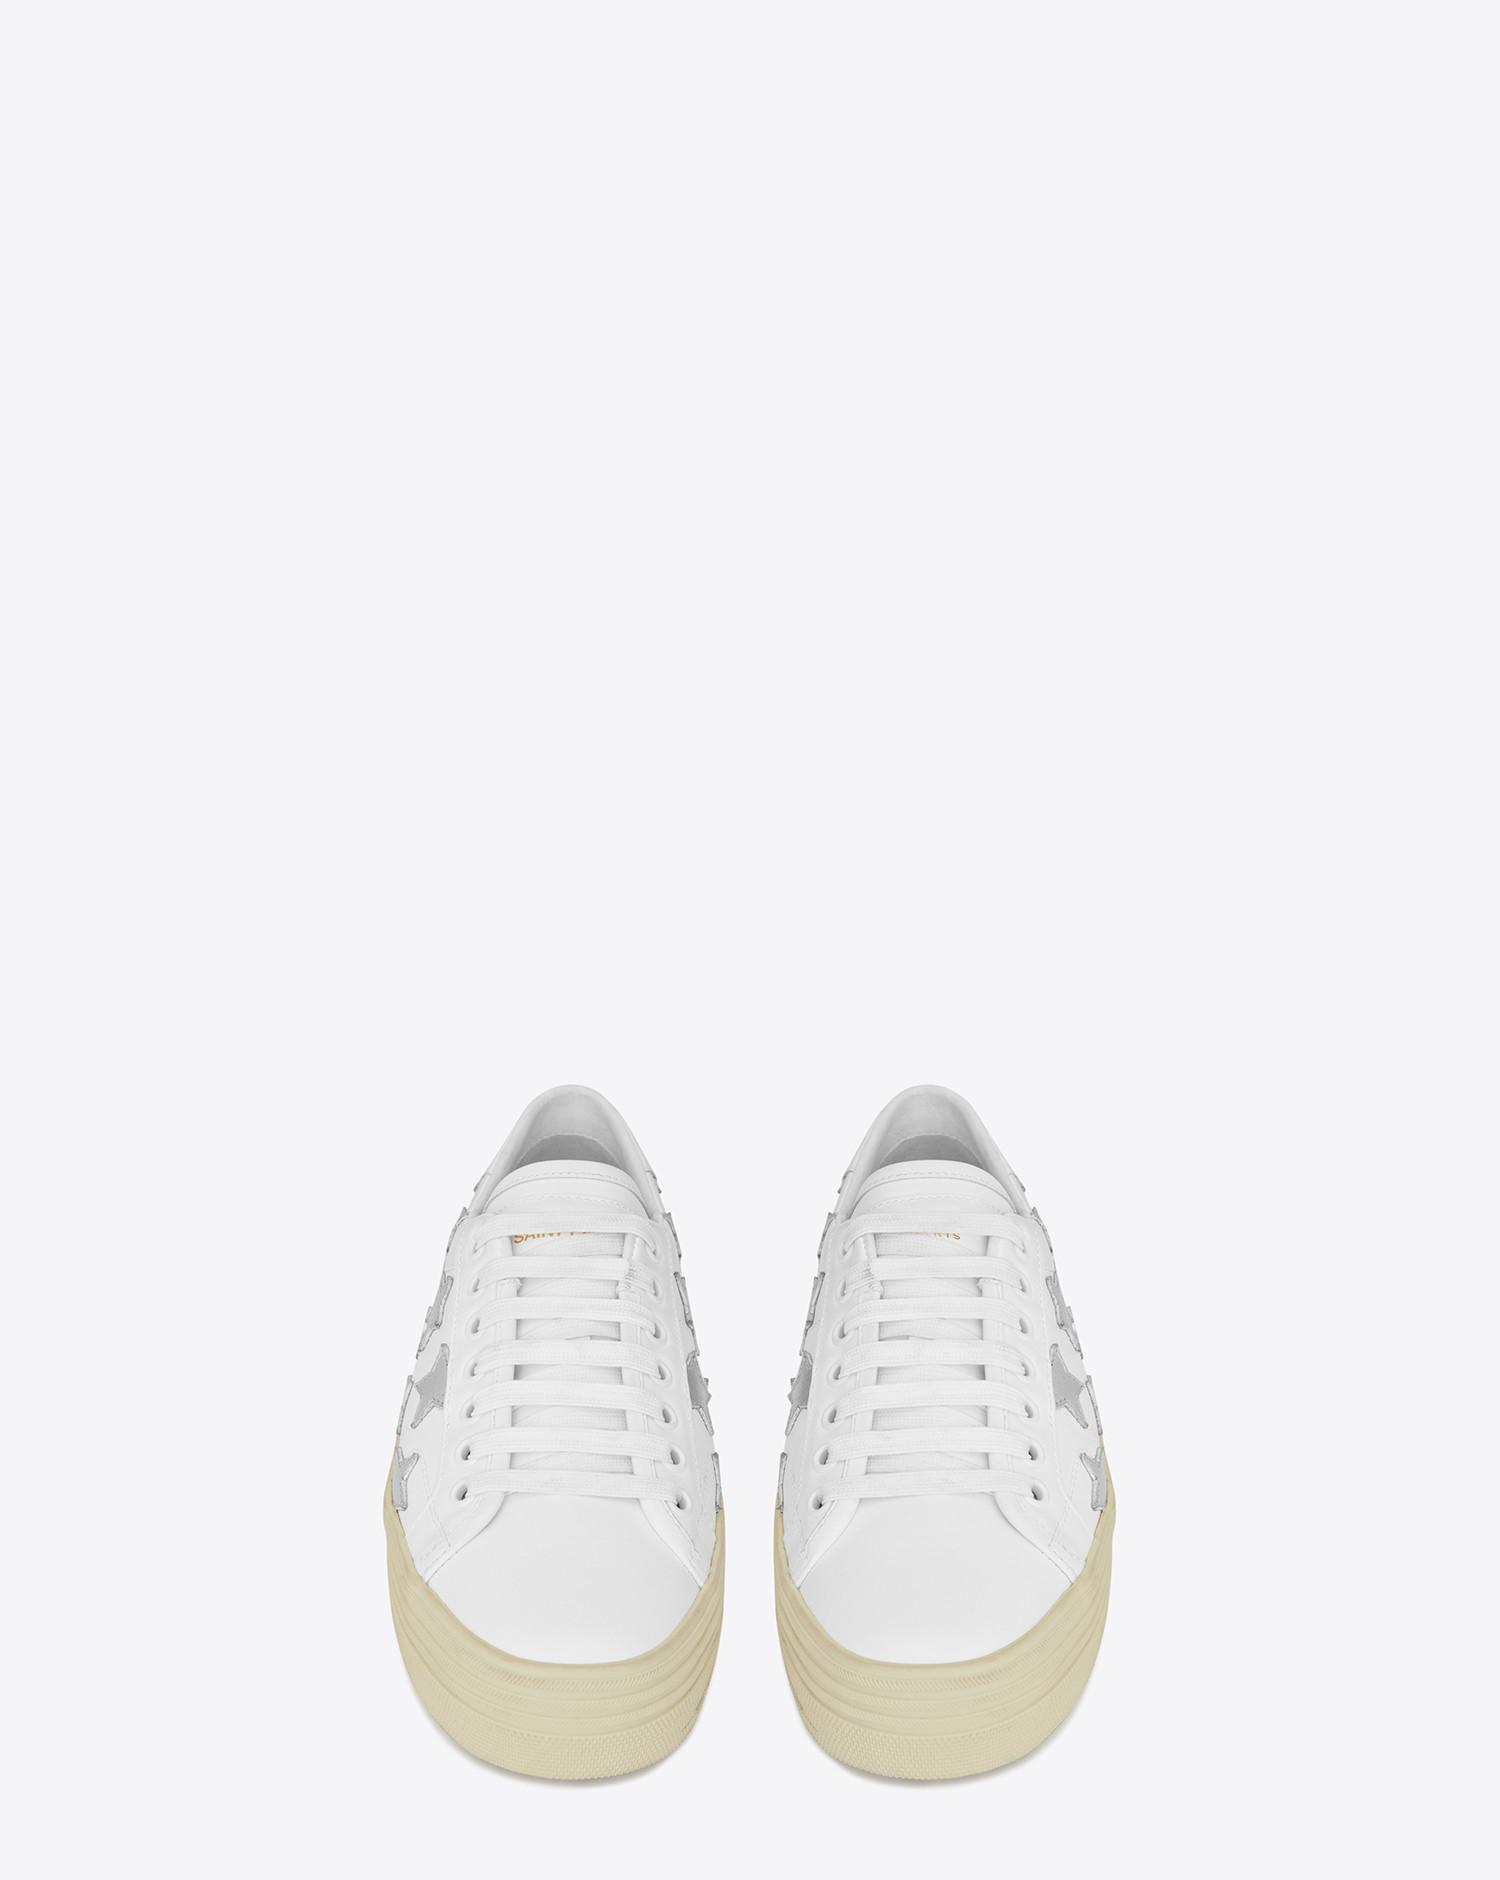 4be3a57e573 Lyst - Saint Laurent Signature Court Classic Sneakers in White